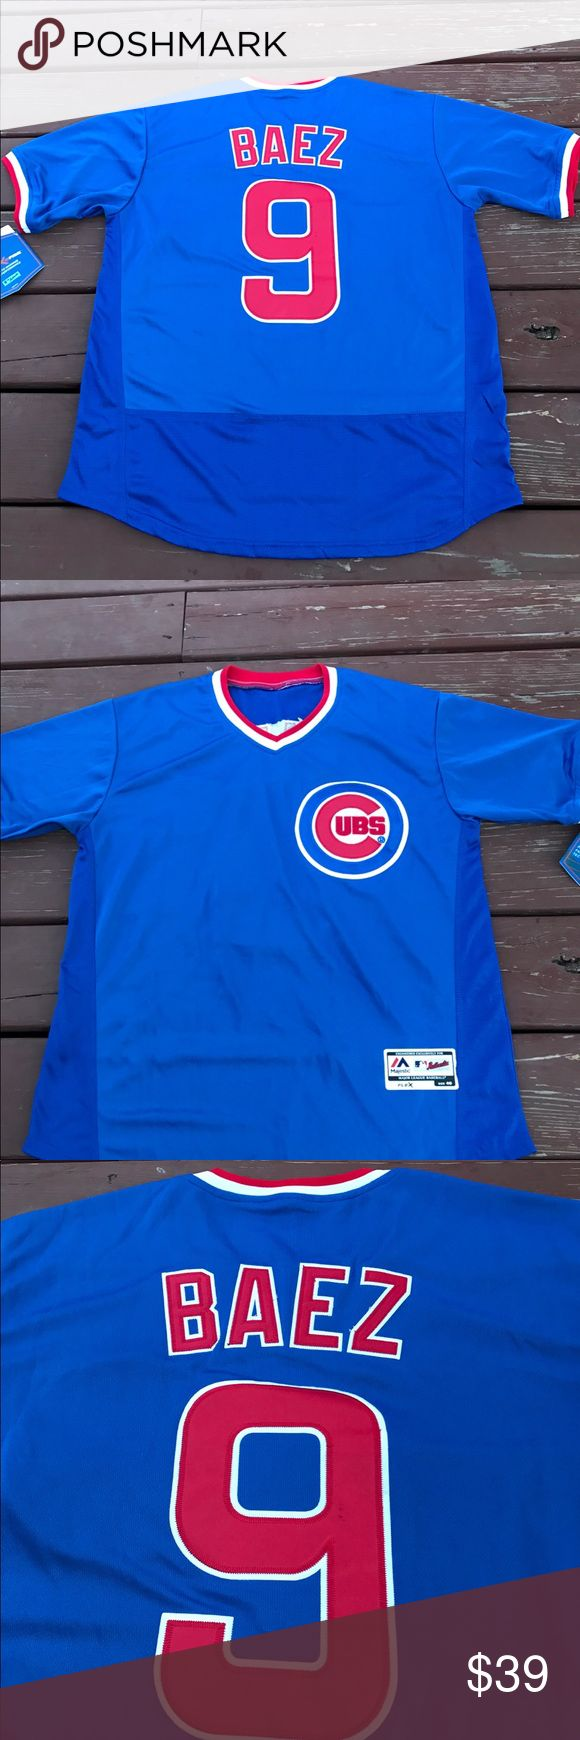 Men's Javier Baez Cubs 1984 Throwback Jersey (M) Men's Chicago Cubs Javier Baez 1984 Majestic Athletic  Throwback Jersey. Brand new with tags, size Medium(40) Flex base On Field jersey. I have a few more of these available in different sizes, please check my listings for more. I recently closed my retail store and am liquidating all my inventory. Over 300 jerseys available for Men, Women and kids. Need a Cubs W flag? How about Cubs World Series patches? Got em! If you don't see what your…